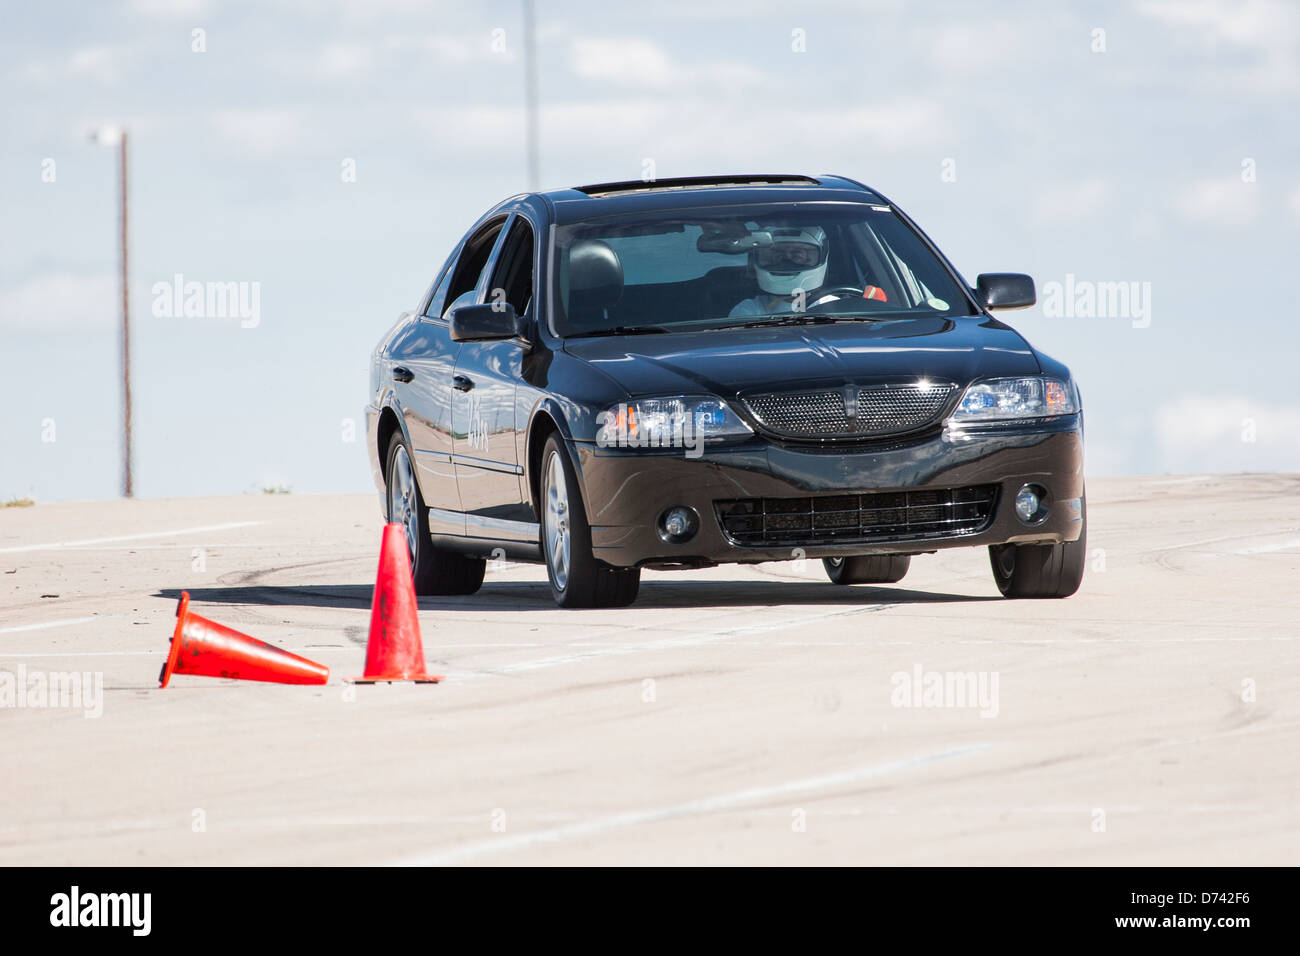 A 2003 Black Lincoln Ls In An Autocross Race At A Regional Sports